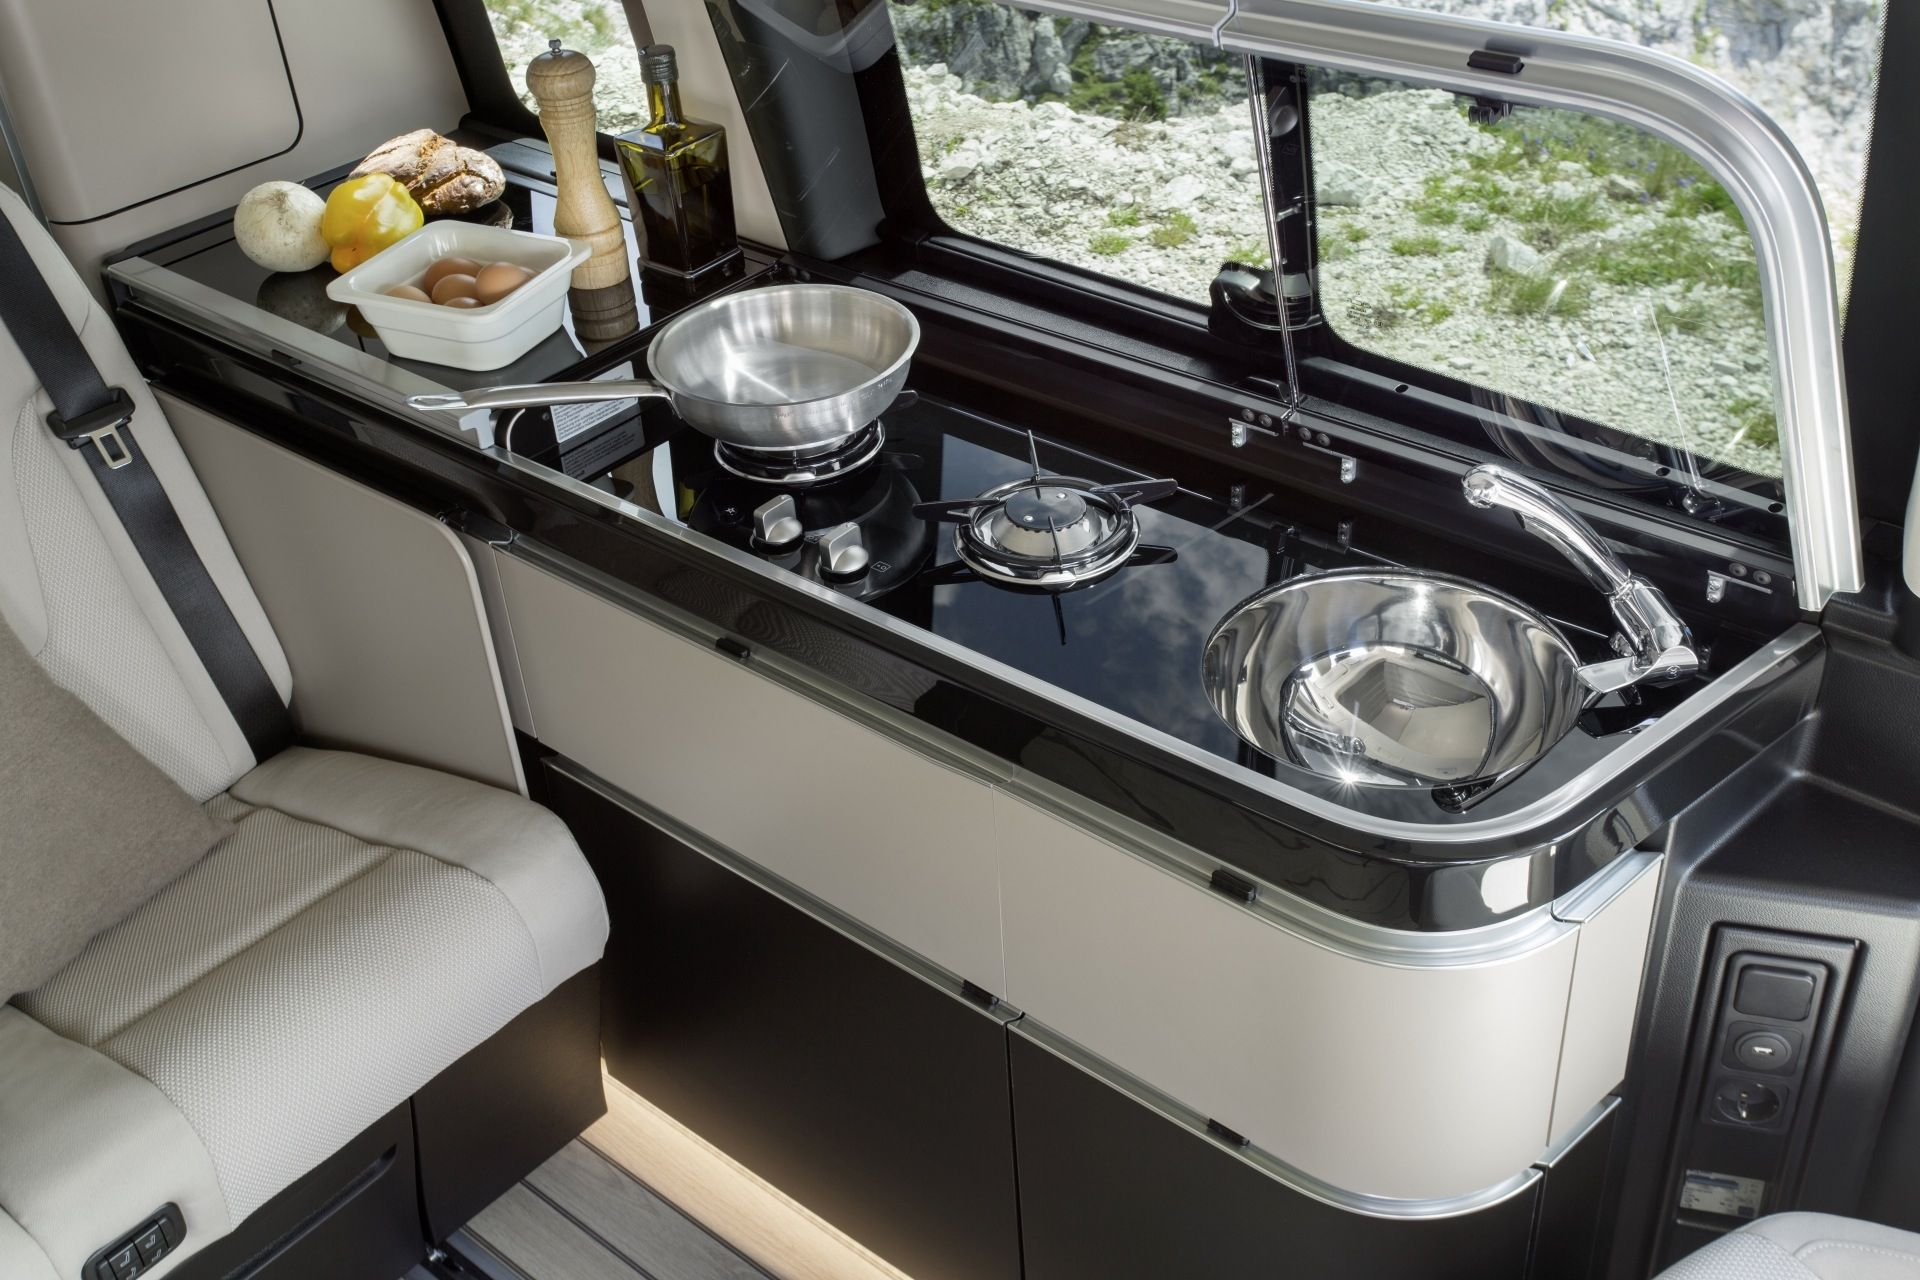 Mercedes Benz Presenting With Its New Recreation Marco Polo Activity Photo Gallery Im Mercedes Camper Mercedes Sprinter Camper Van Mercedes Sprinter Camper